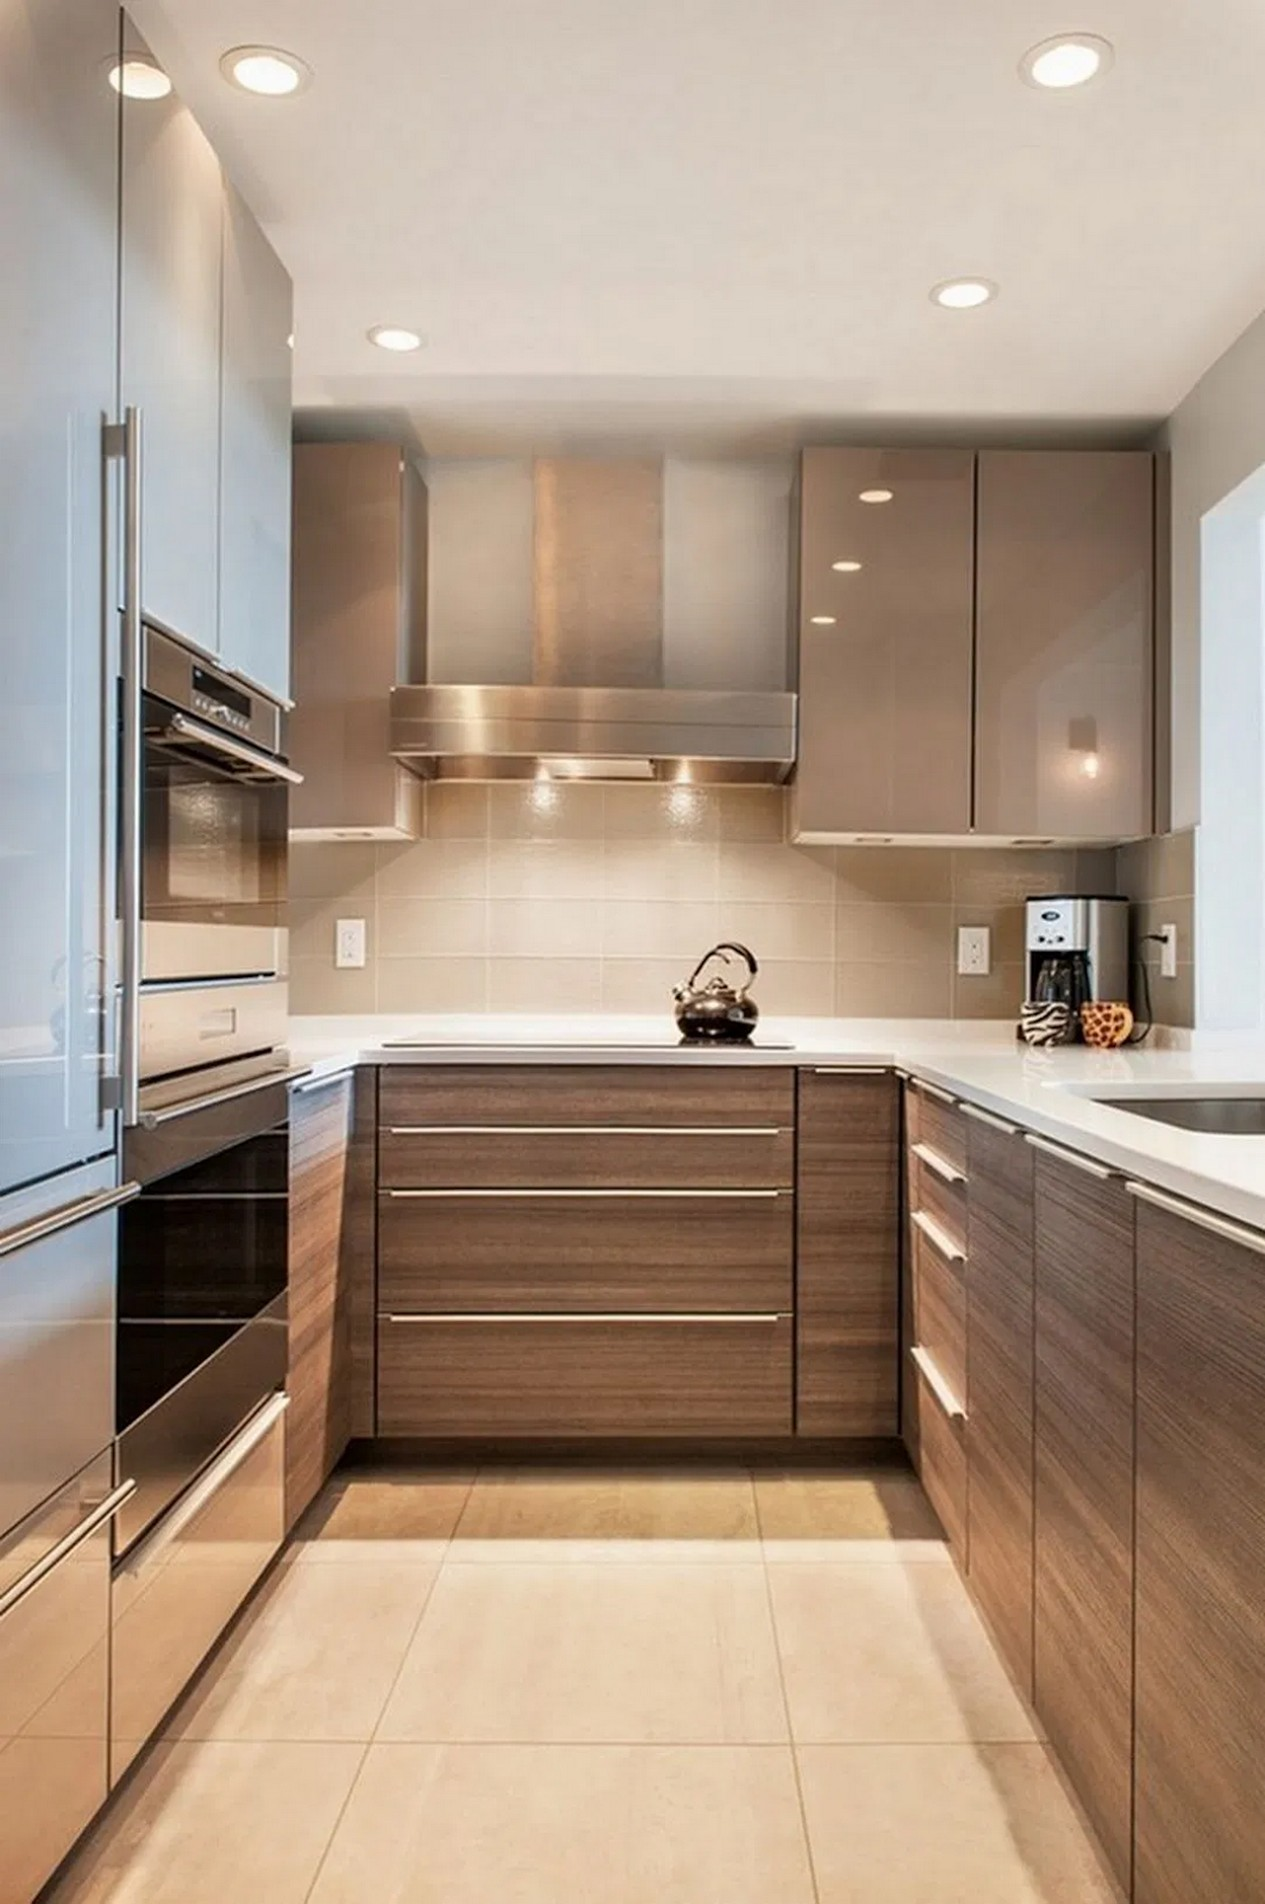 86 Some Small Kitchen Ideas To Help You Do Up Your Kitchen 78